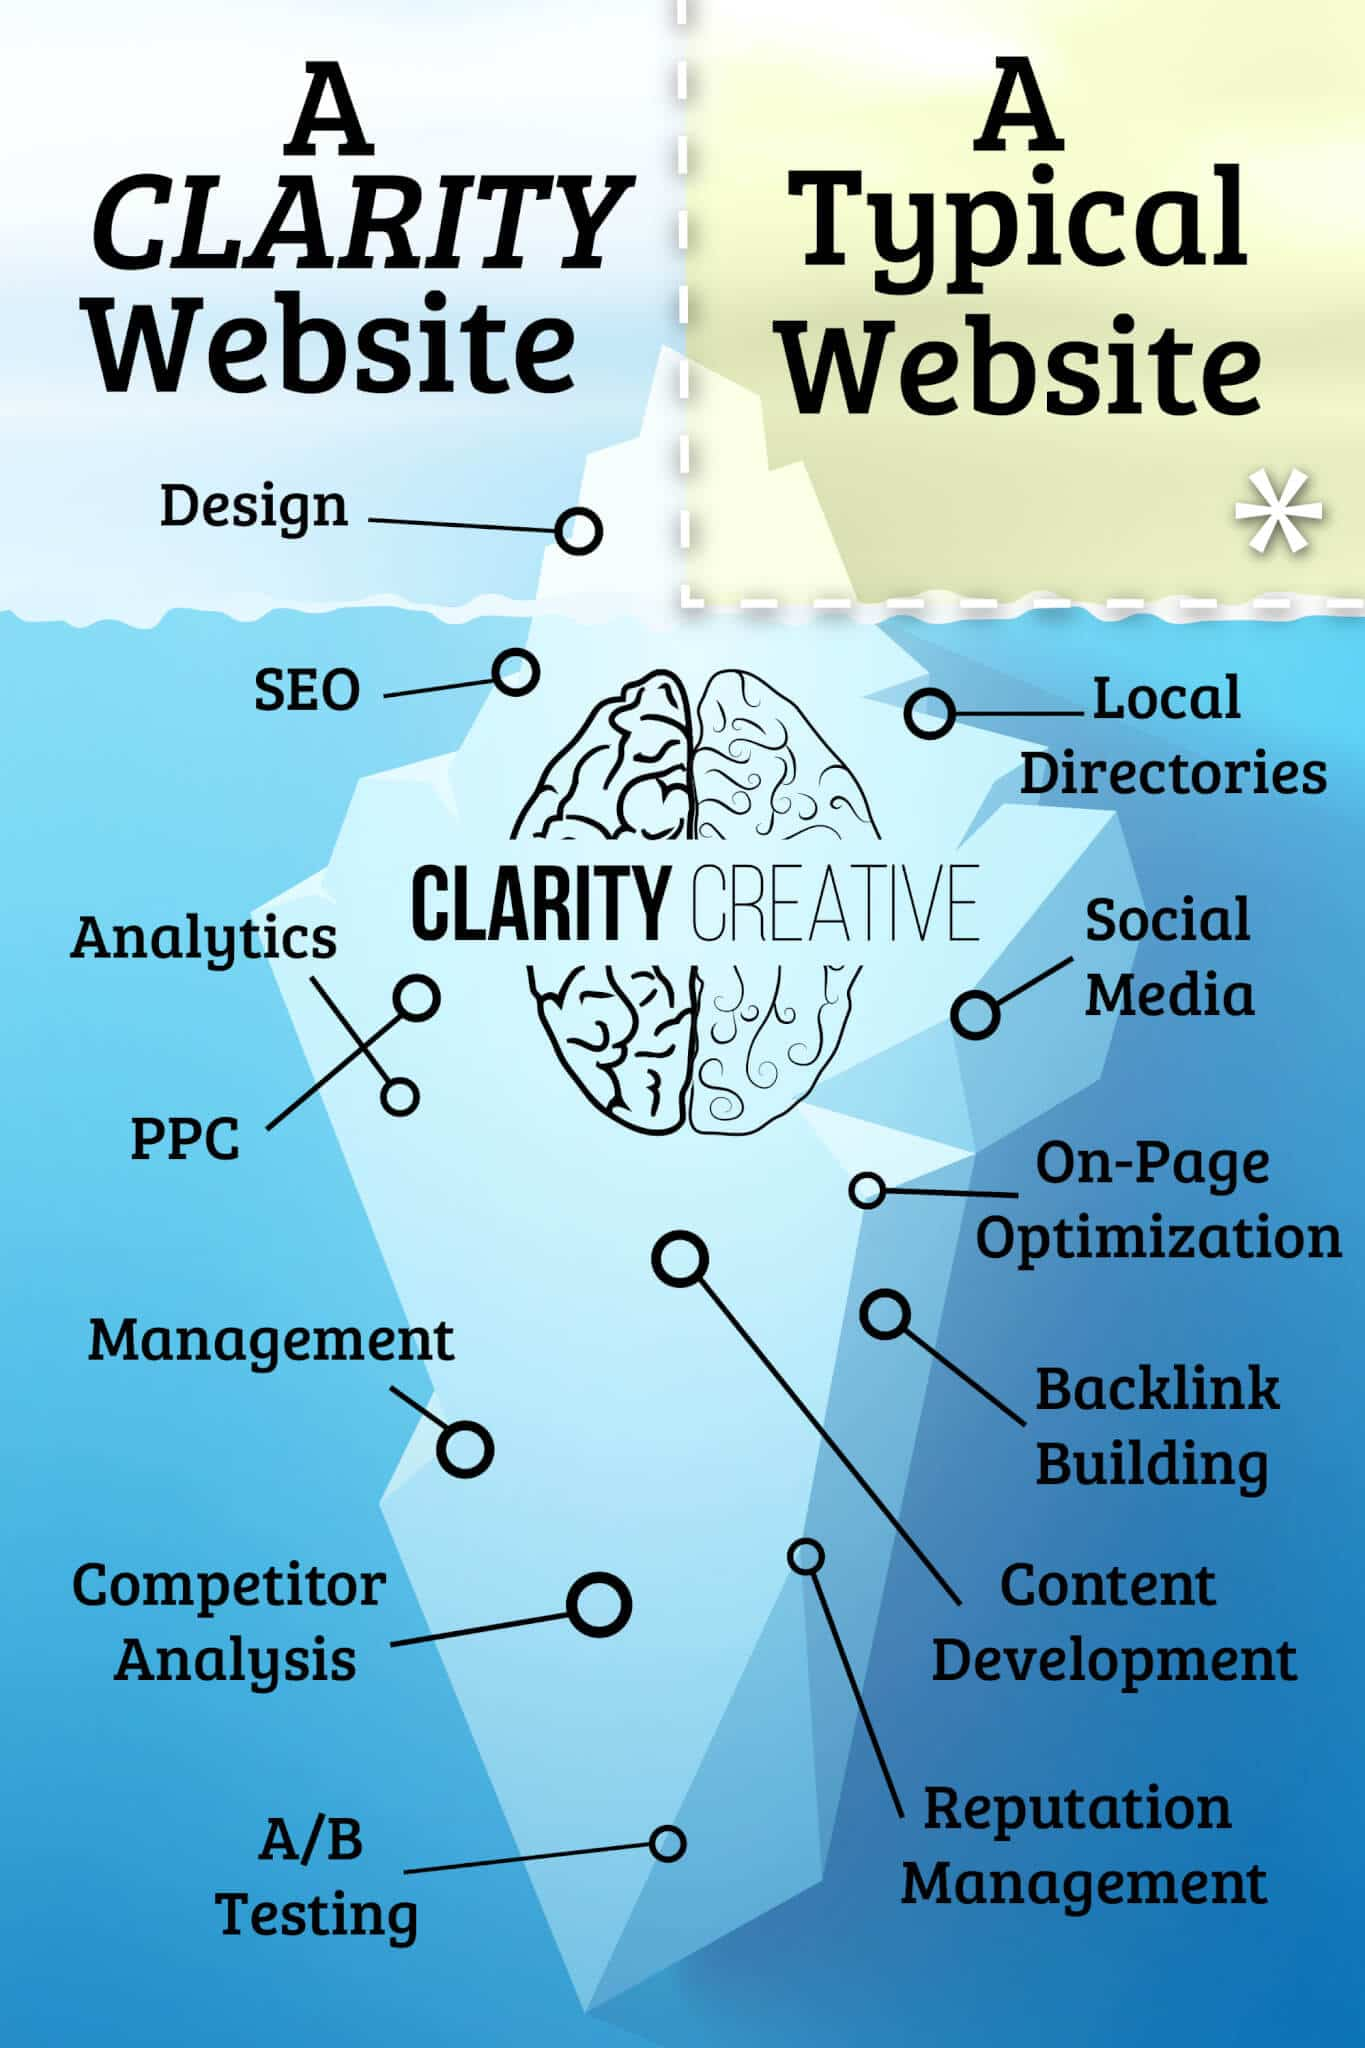 a clarity website vs. a typical website